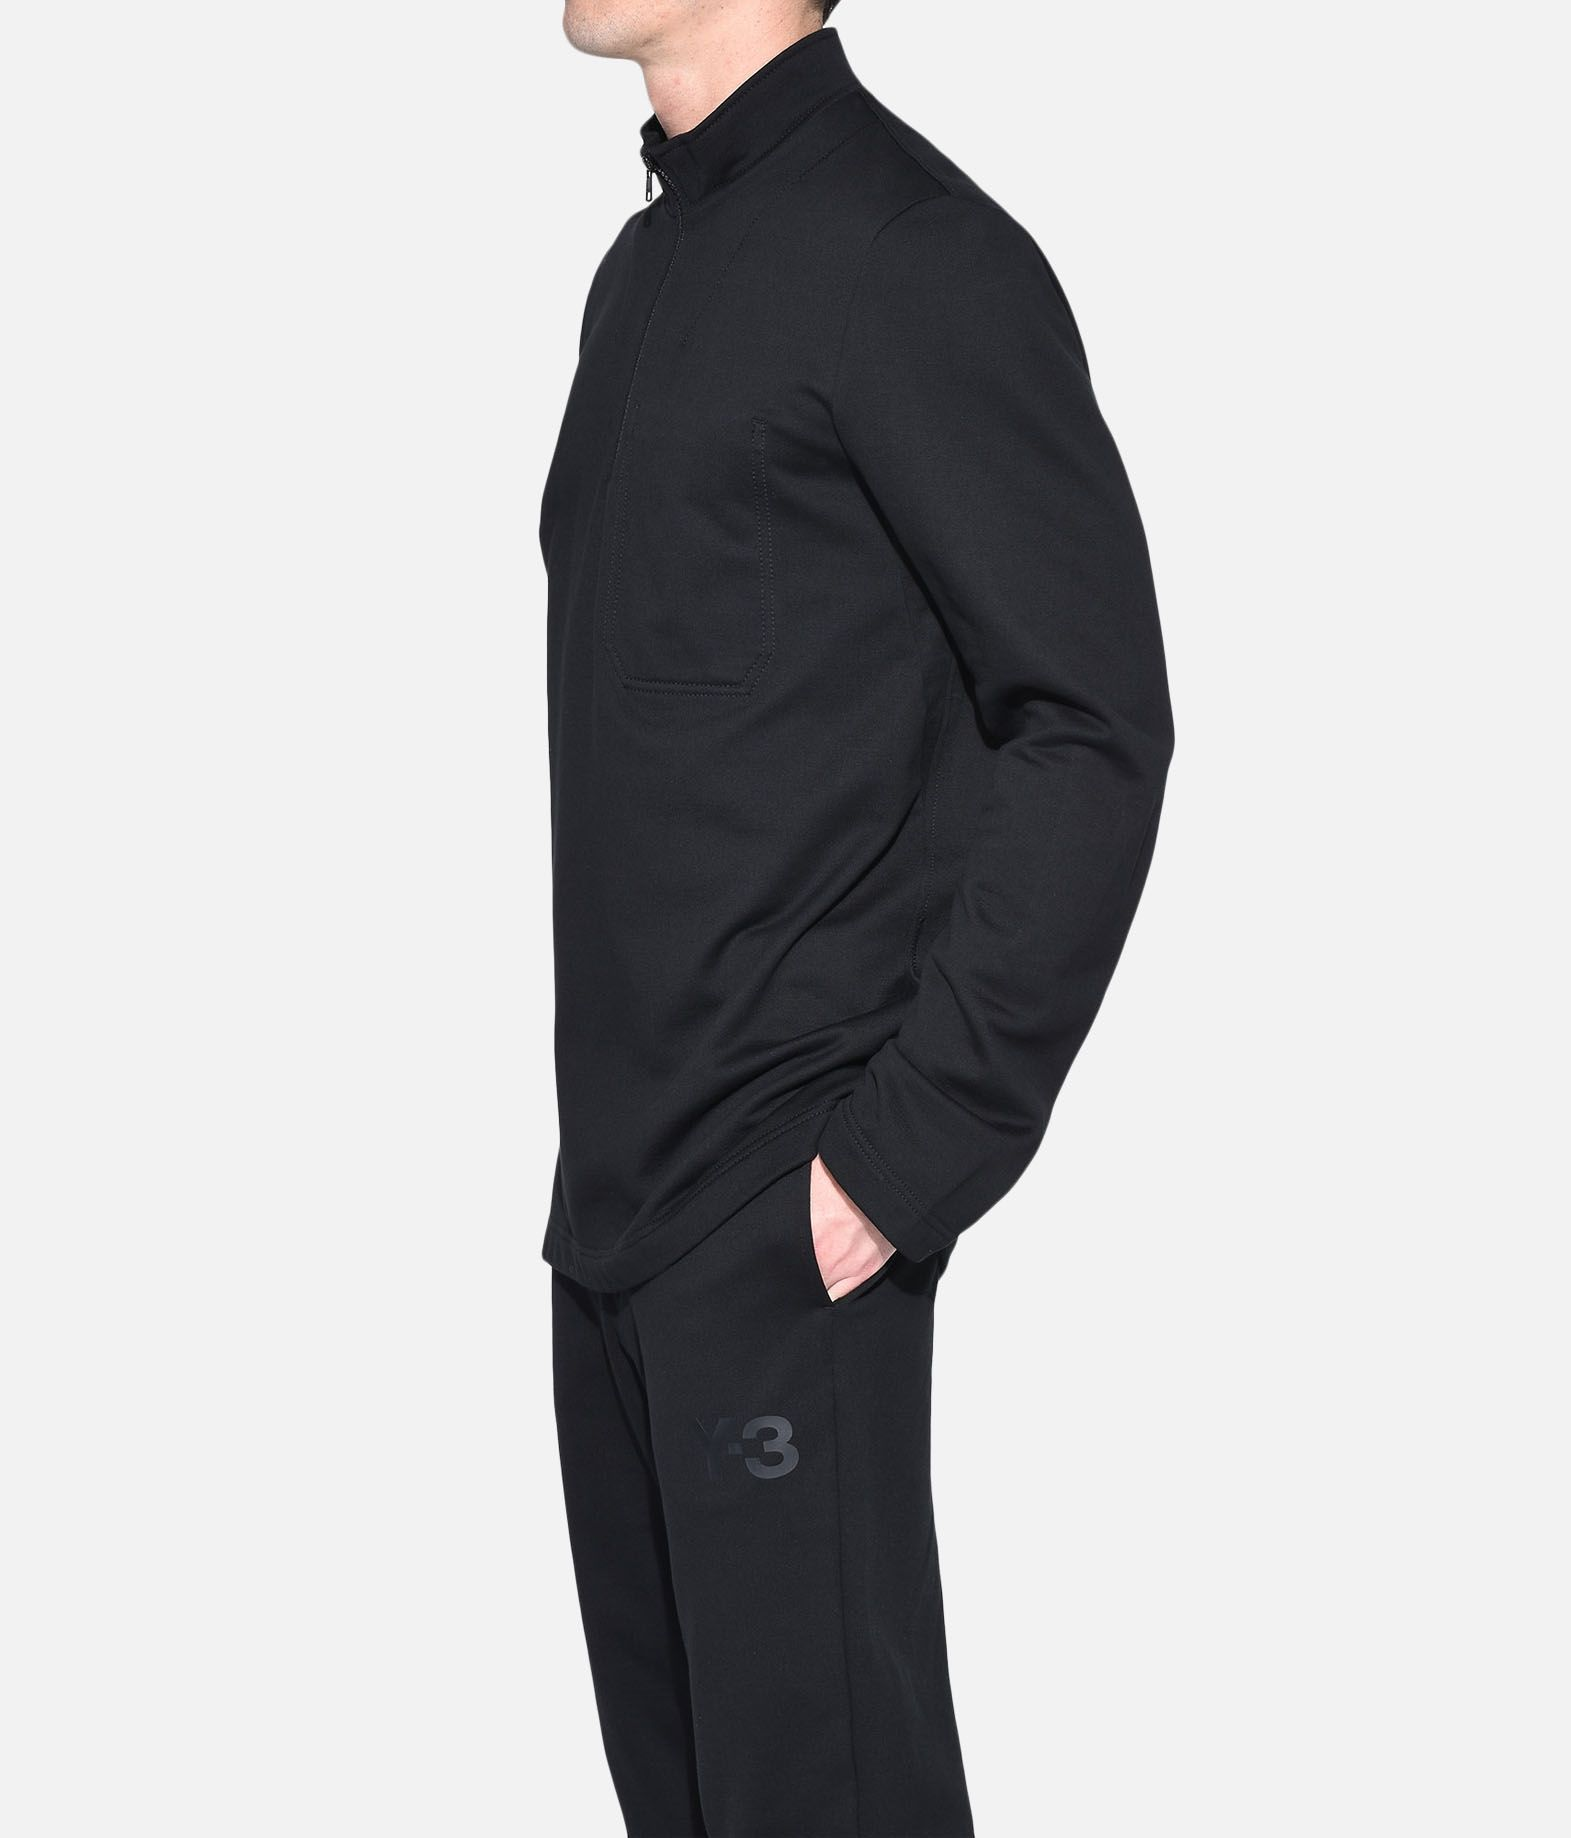 Y-3 Y-3 Sashiko Sweater Zipped jumper Man e